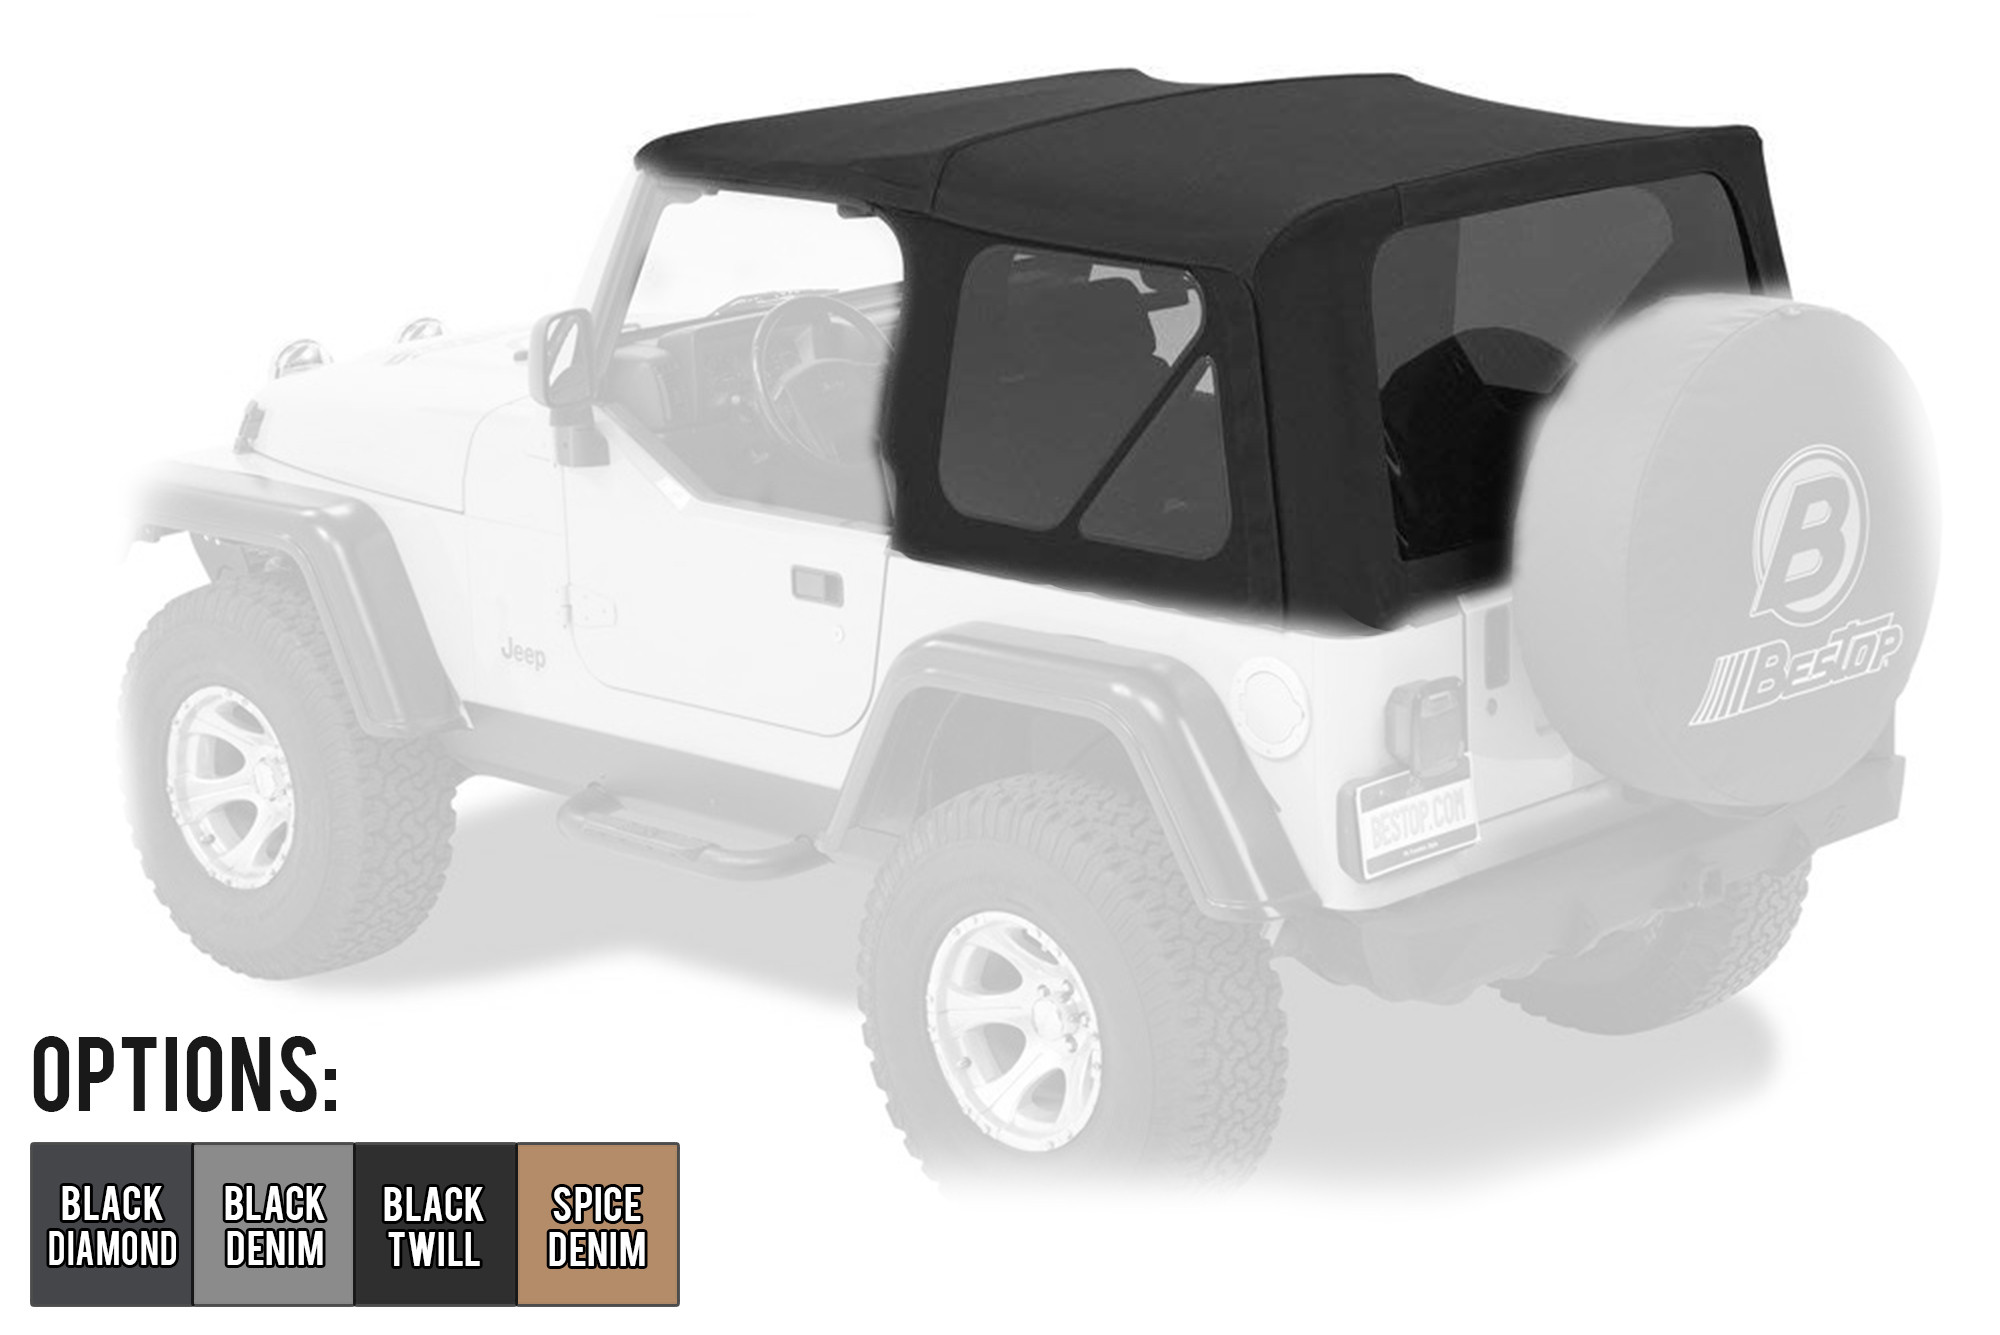 BESTOP Supertop NX Soft Top With Tinted Windows (OEM Style) For 1997-06 Jeep Wrangler TJ Models 54720-